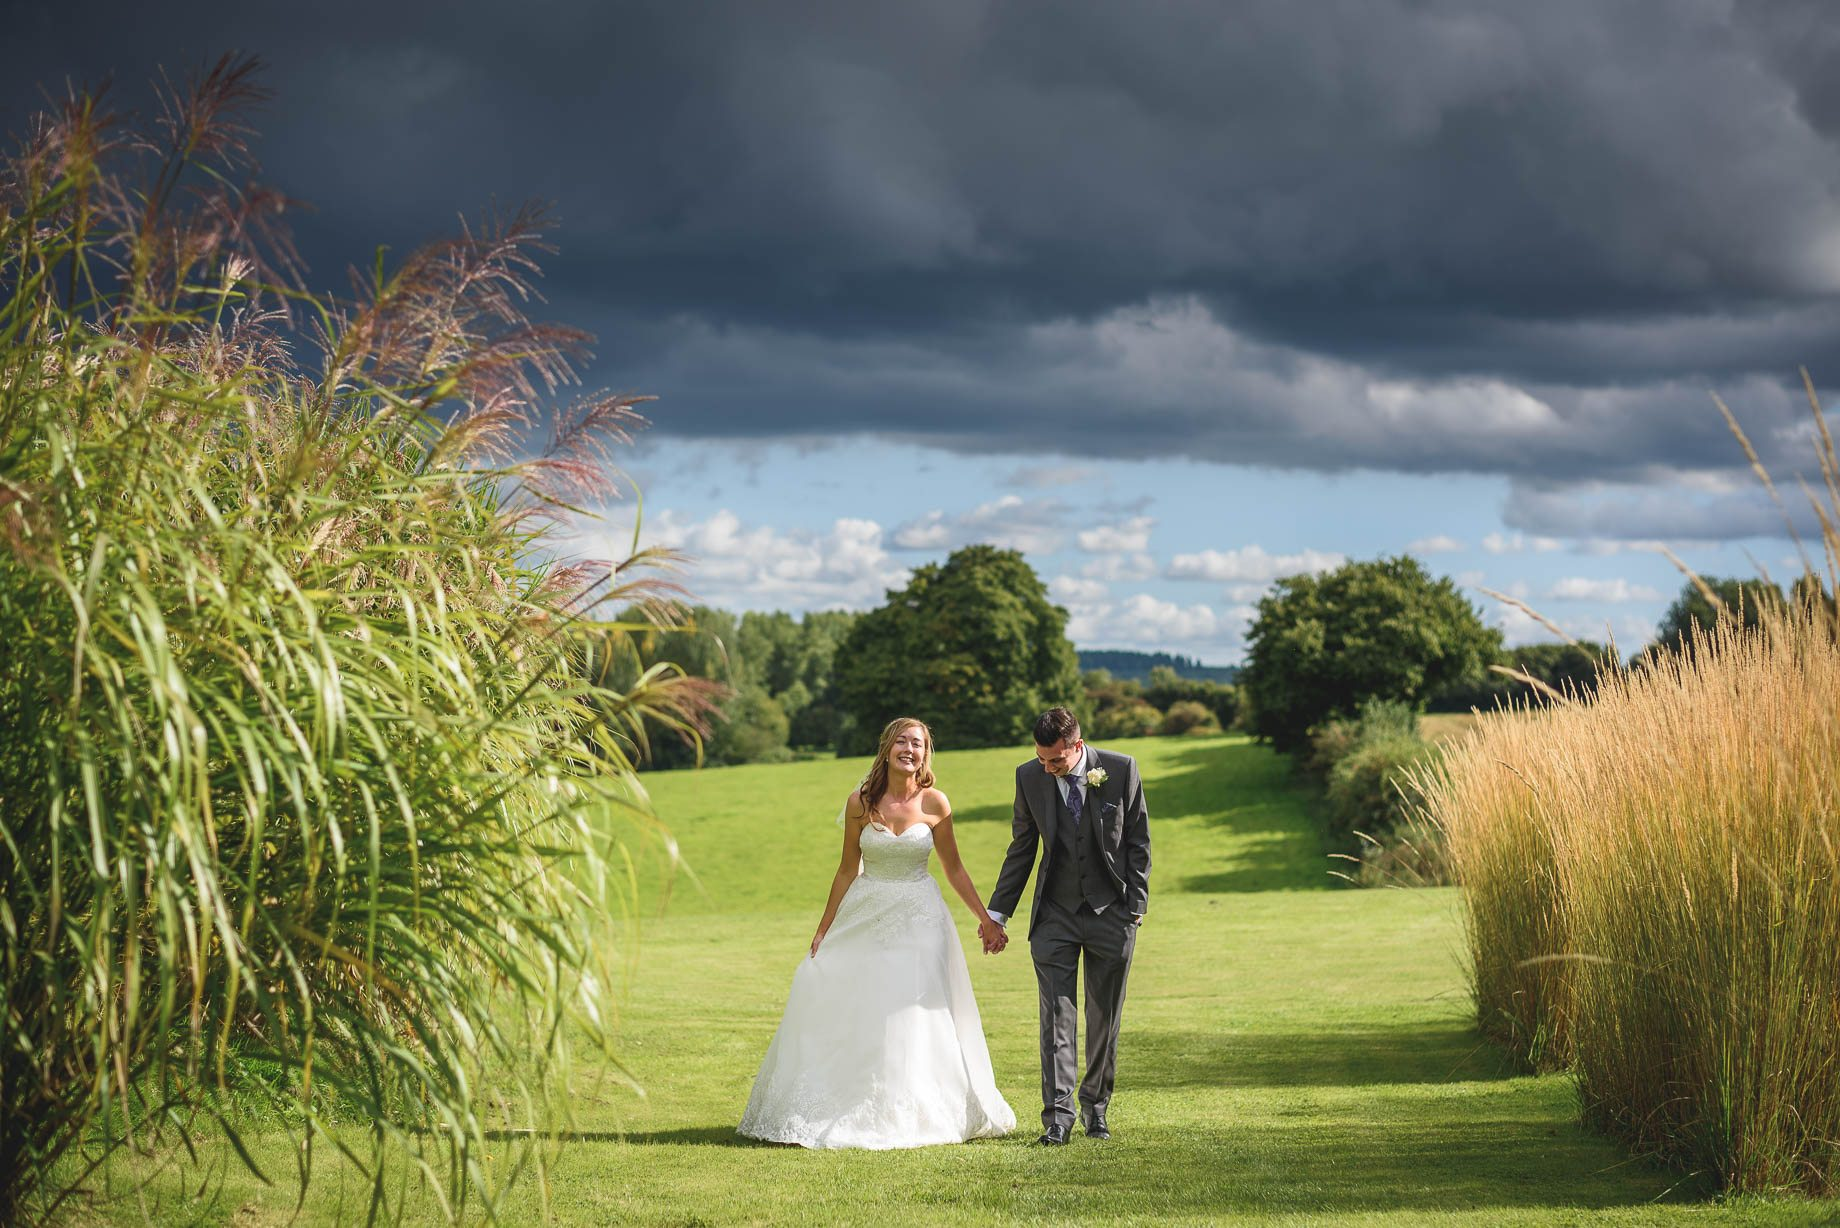 Bury-Court-Barn-wedding-photography-Guy-Collier-Kirsty-and-Lewis-98-of-150